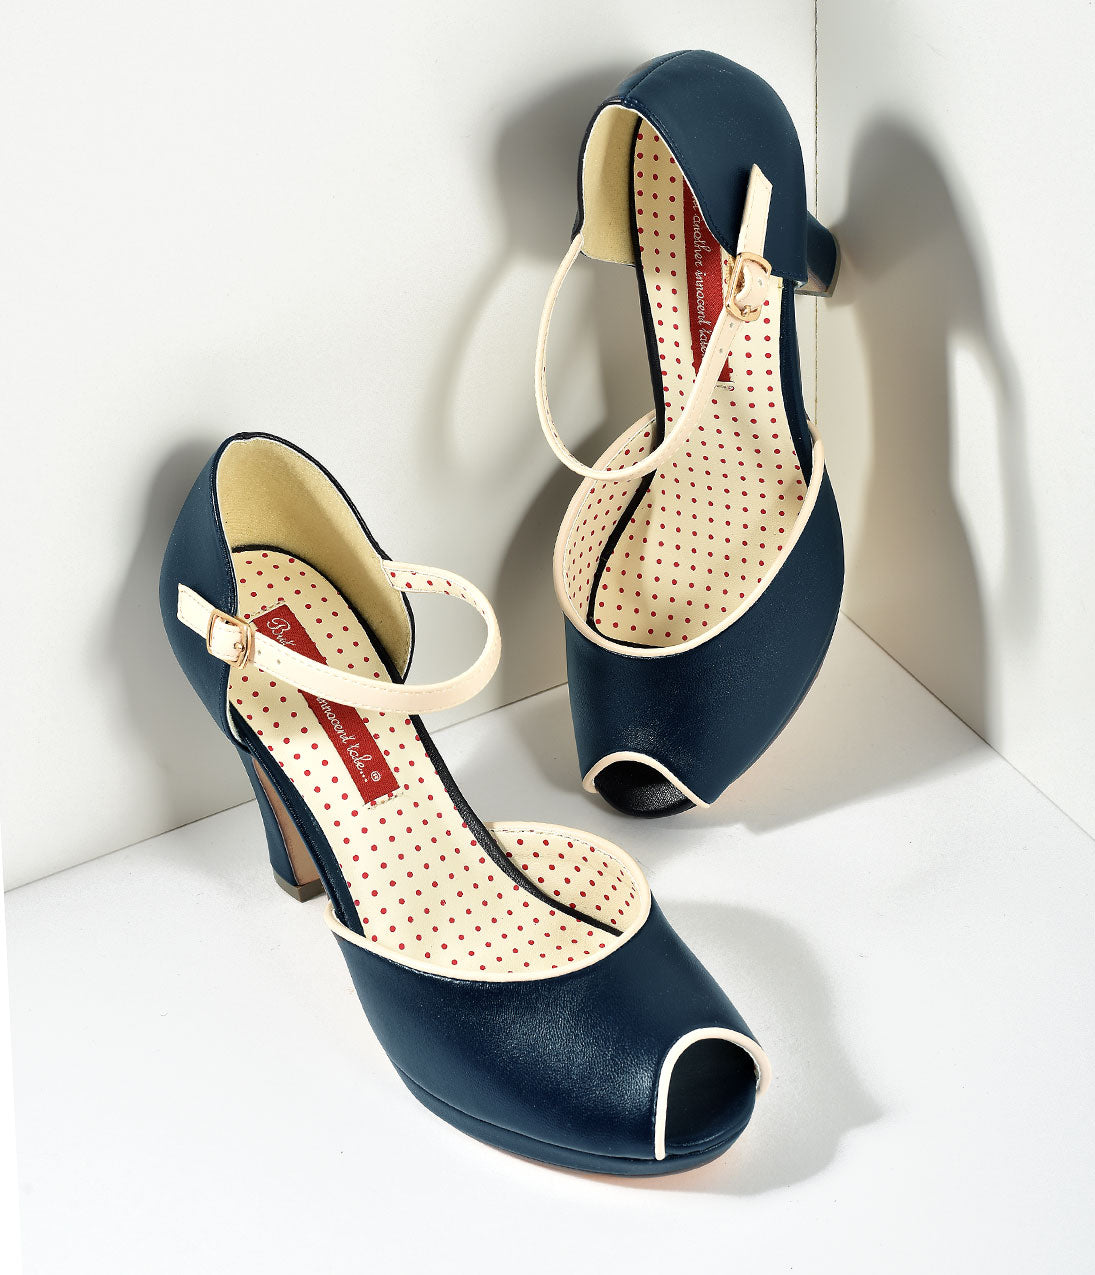 1950s Style Shoes B.A.I.T. Midnight Navy Blue Leatherette Peep Toe Laurel Heels Shoes $72.00 AT vintagedancer.com